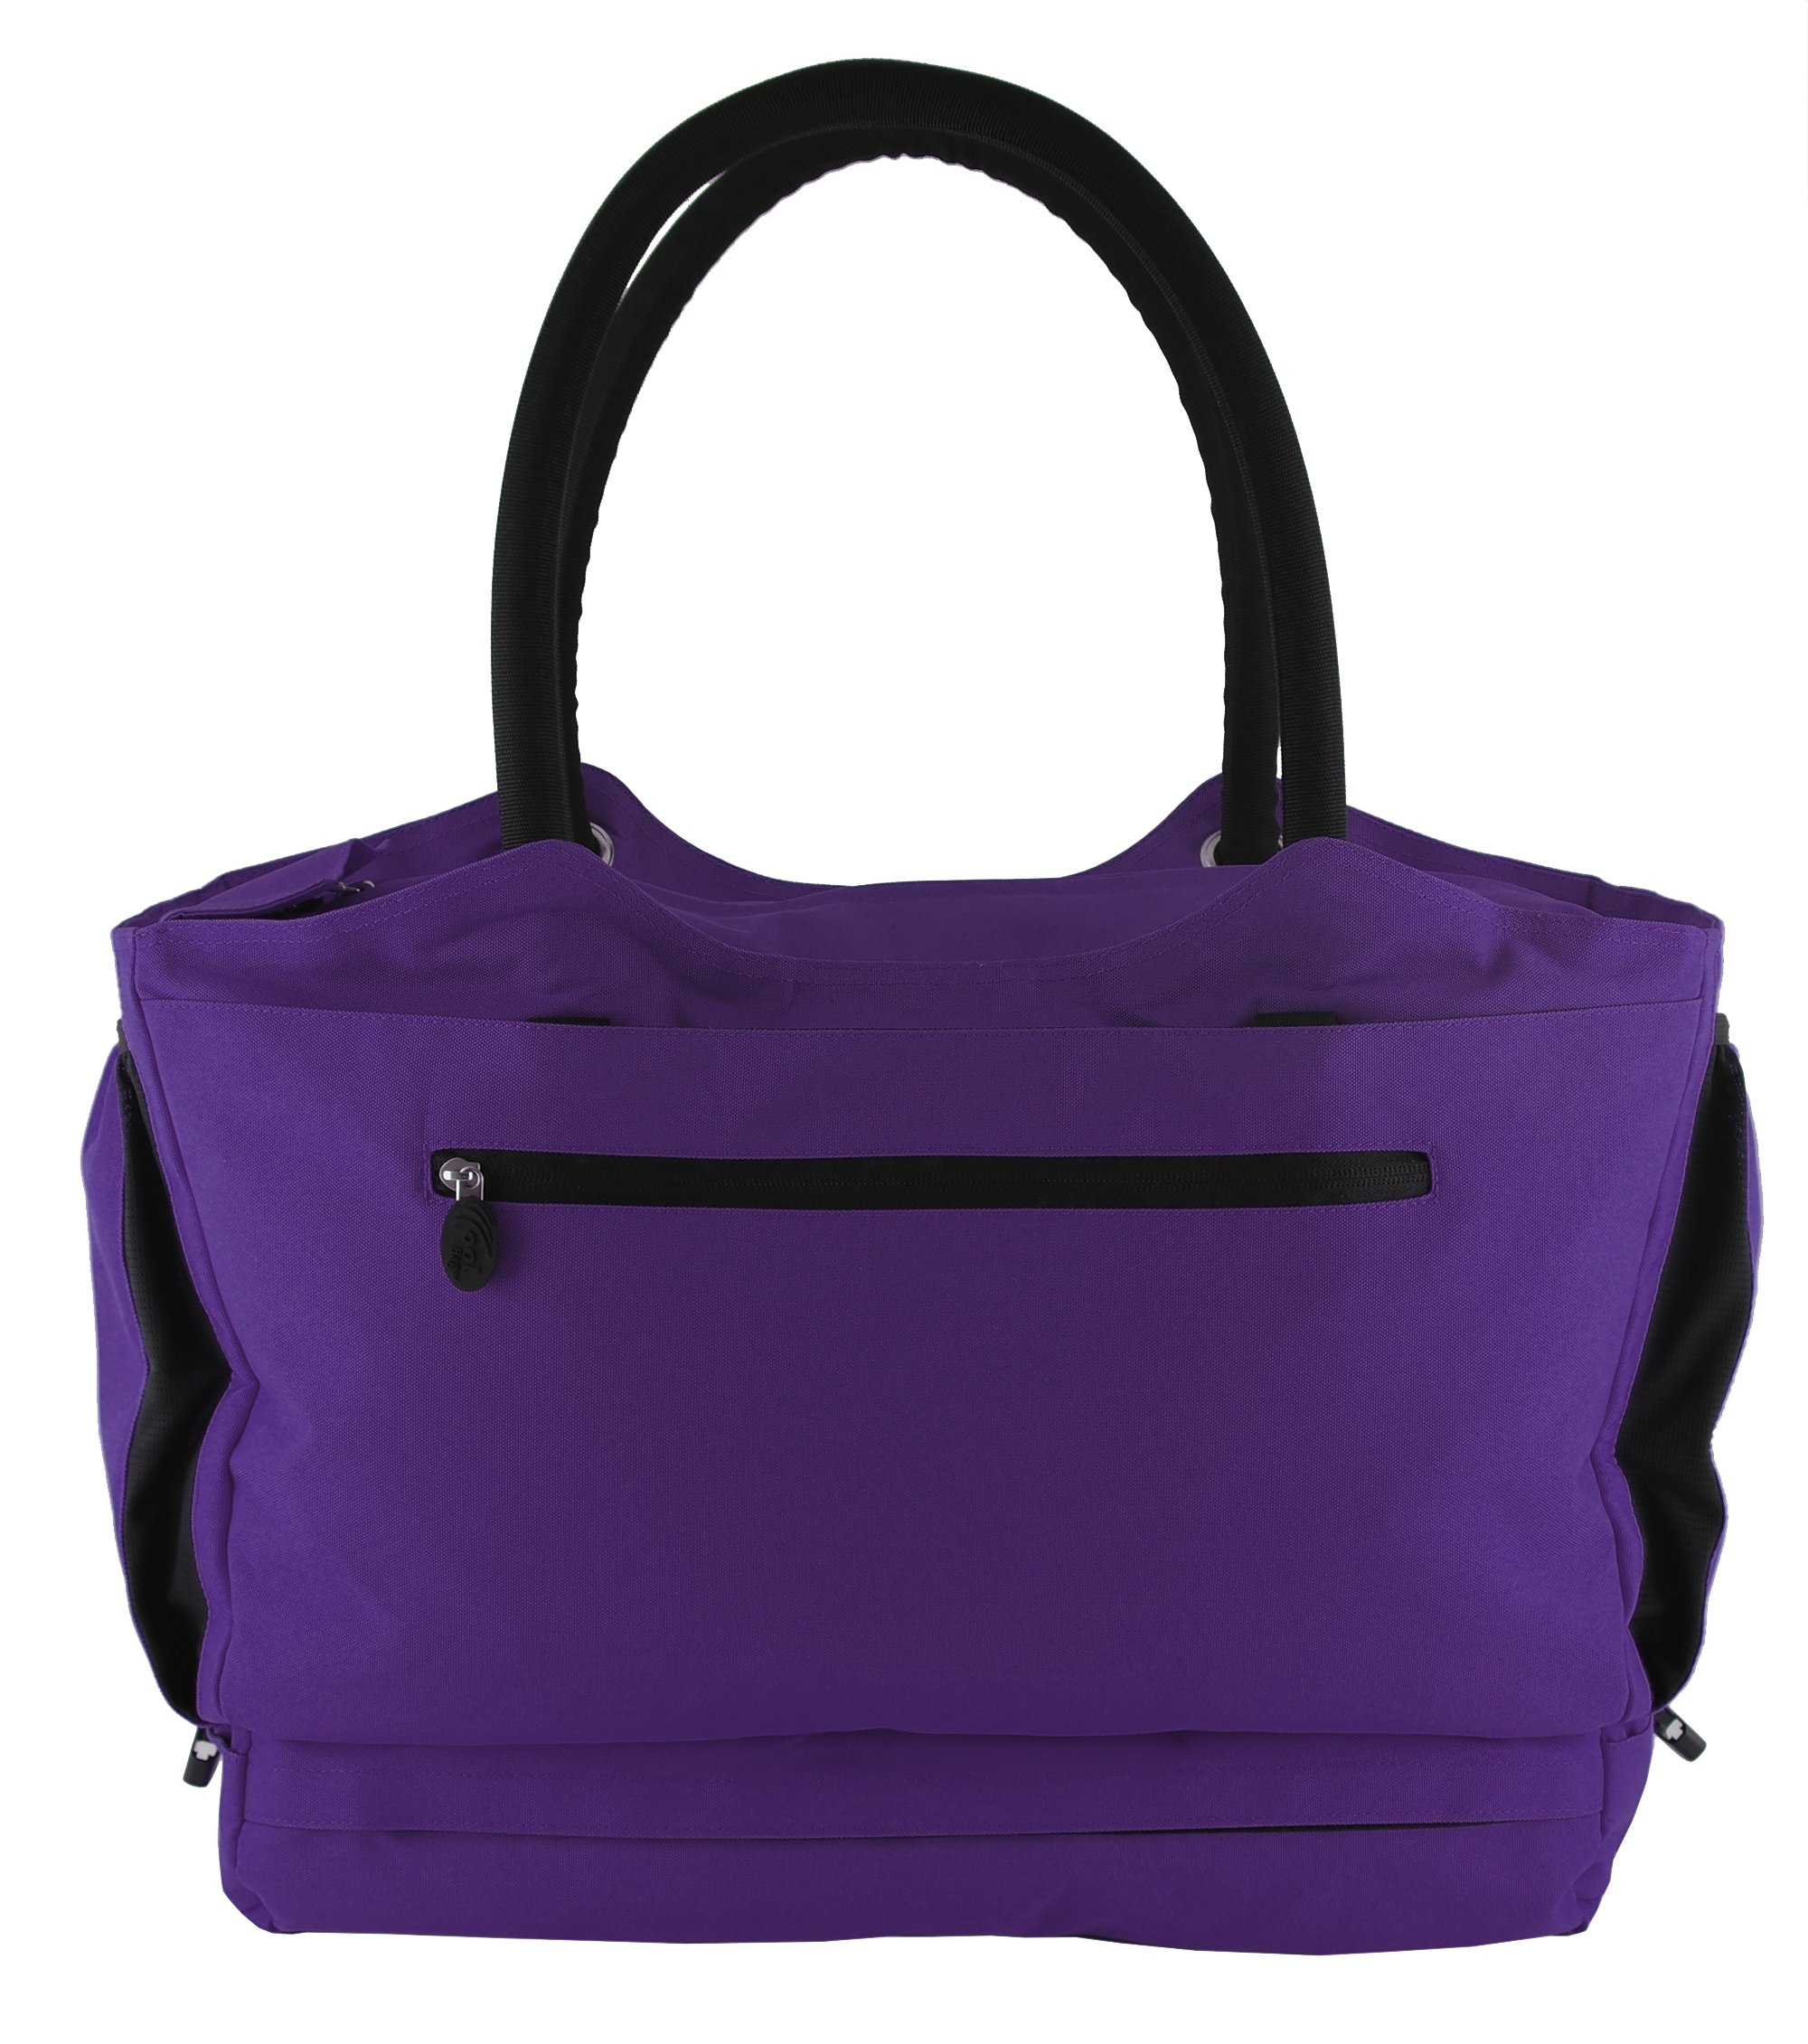 CoolBag Gen 2 Locking Anti-Theft Travel Tote With Insulated Cooler Compartment (Puerto Rico Purple) by CoolBag